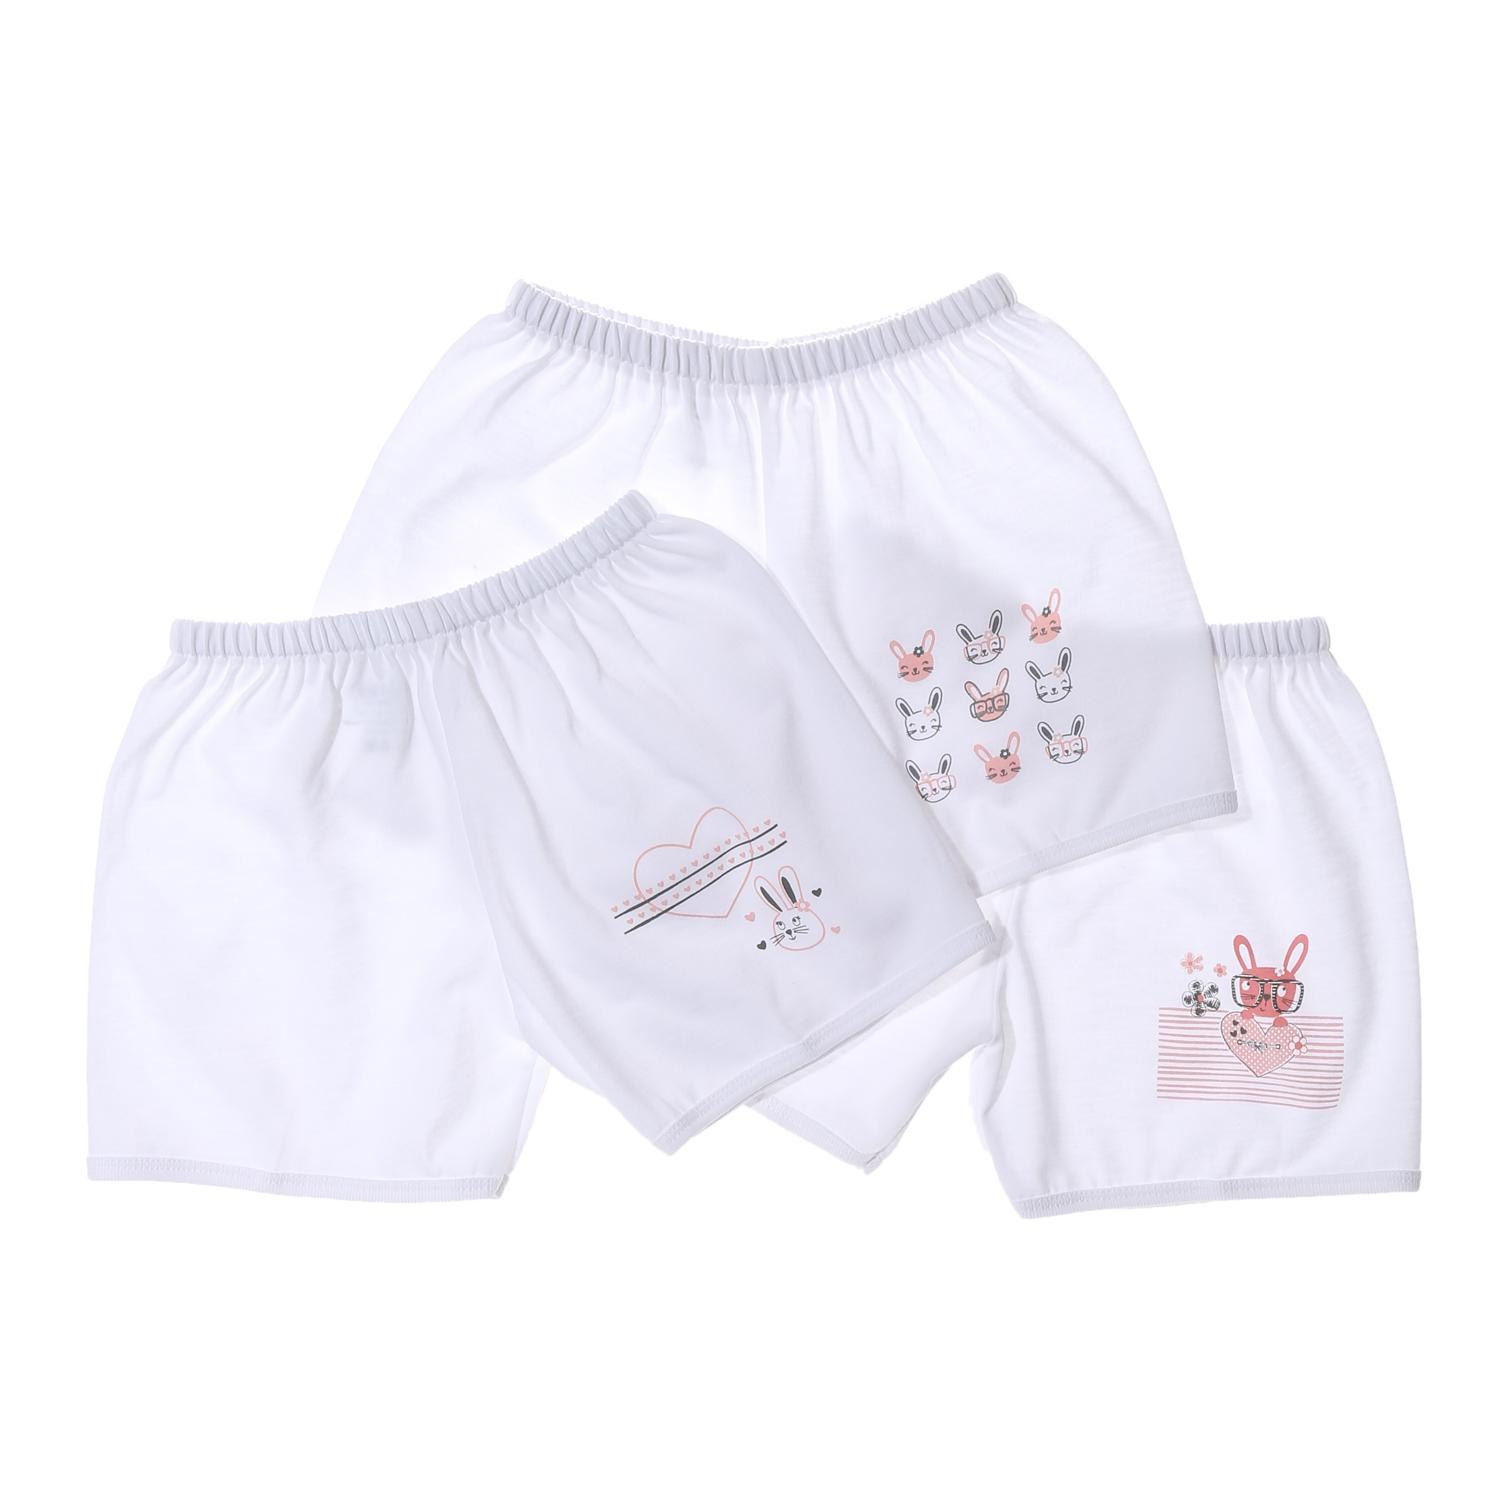 47419136612a Baby Clothes for sale - Baby Clothing online brands